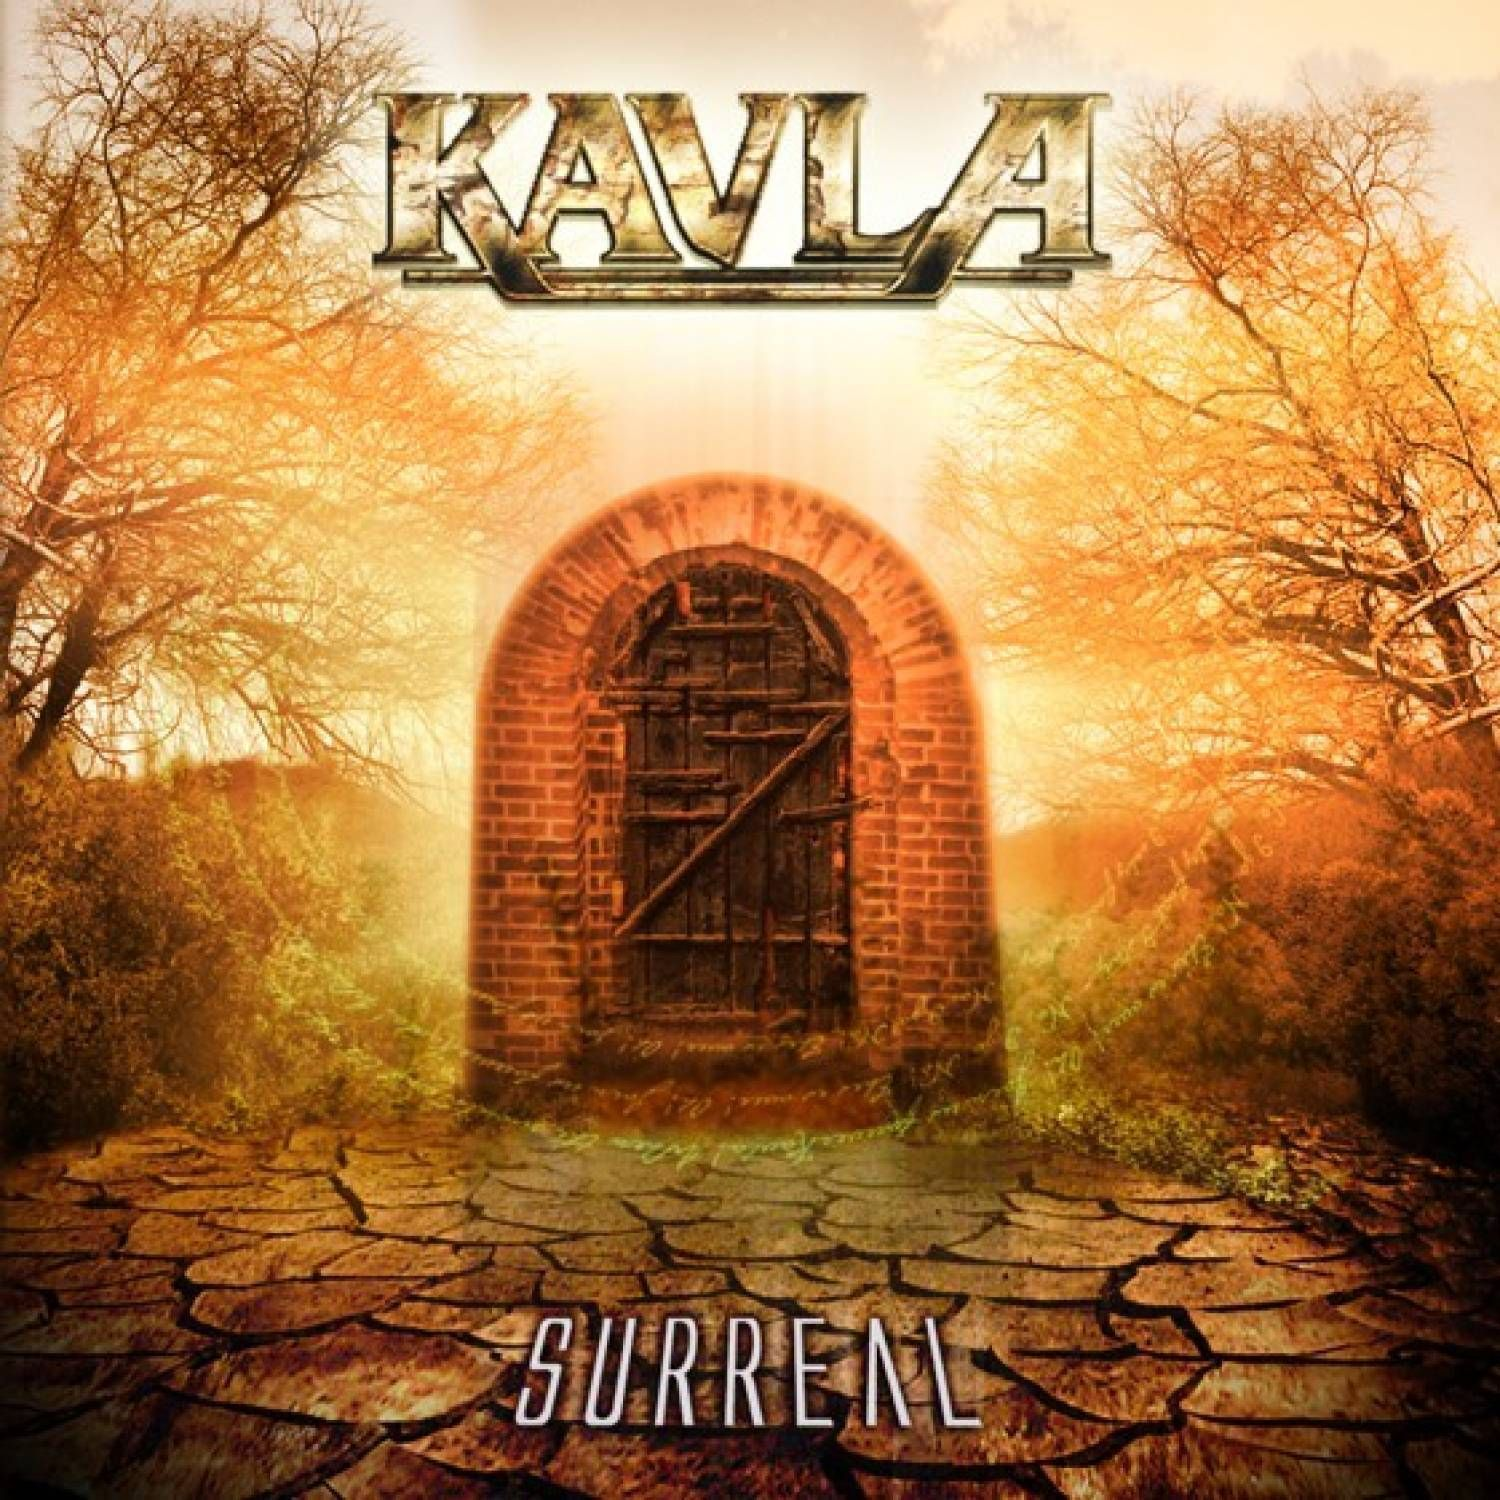 CD - Kavla - Surreal Autografado